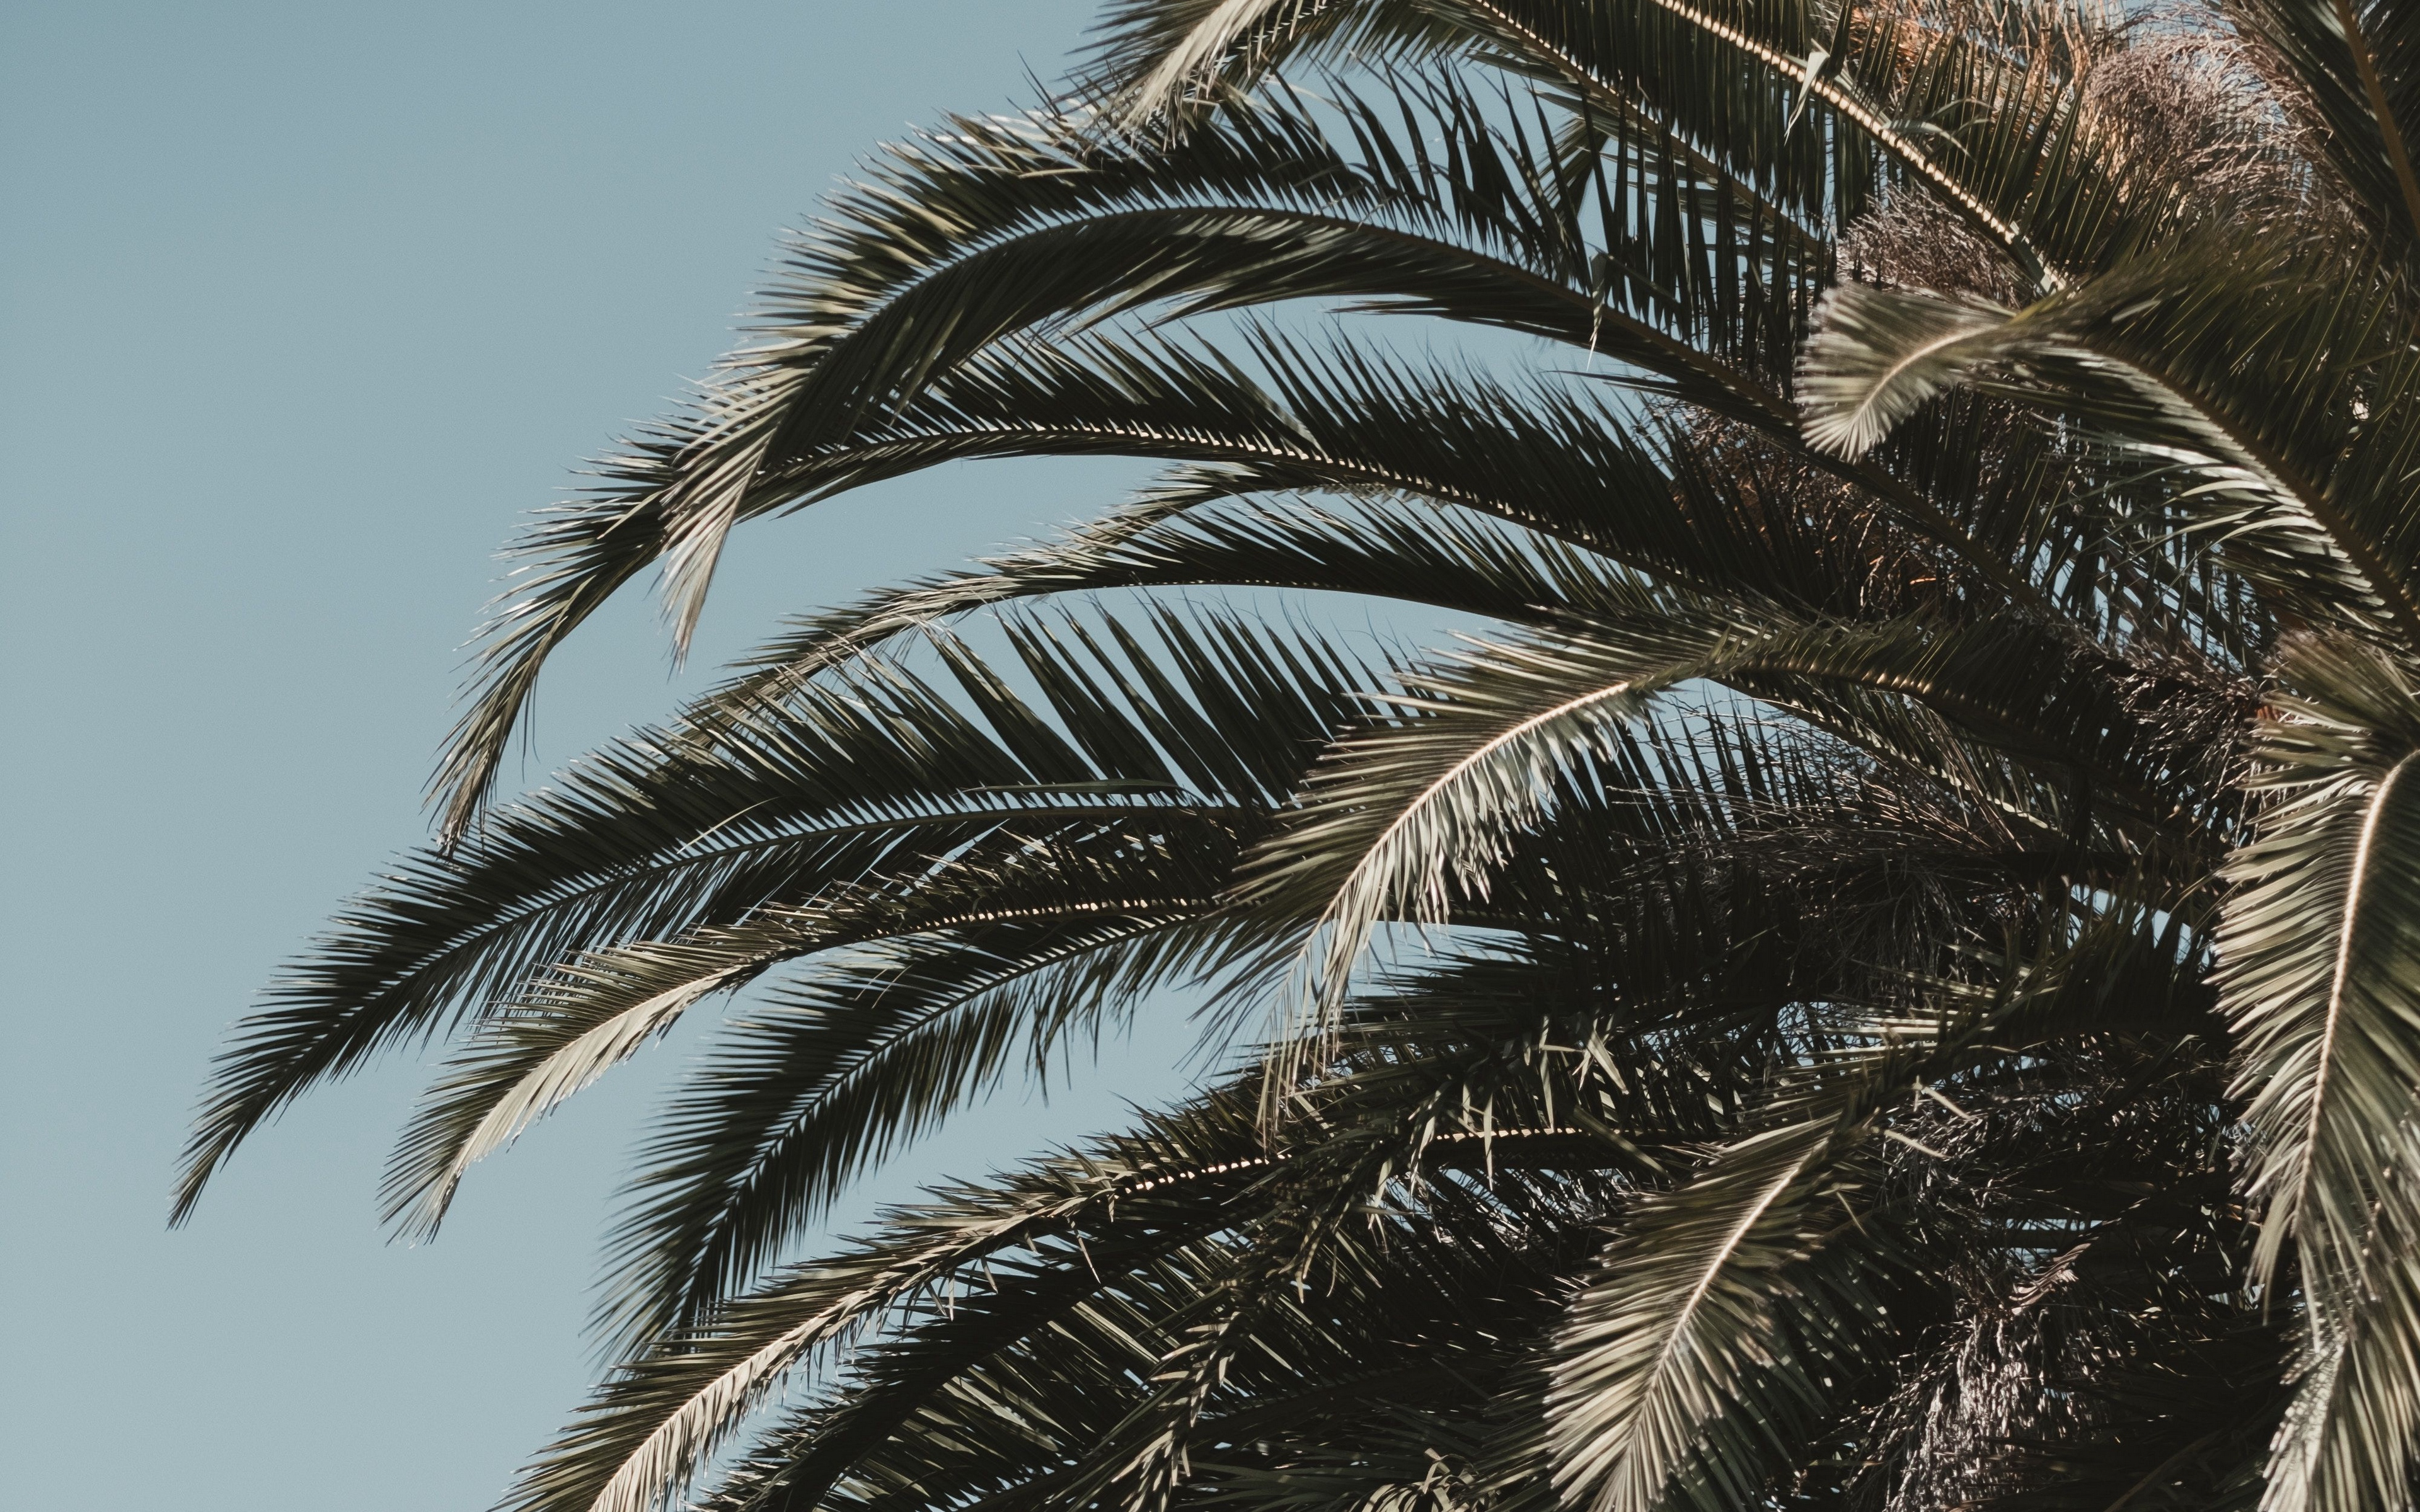 Palm Leaves Wallpapers 4k , HD Wallpaper & Backgrounds